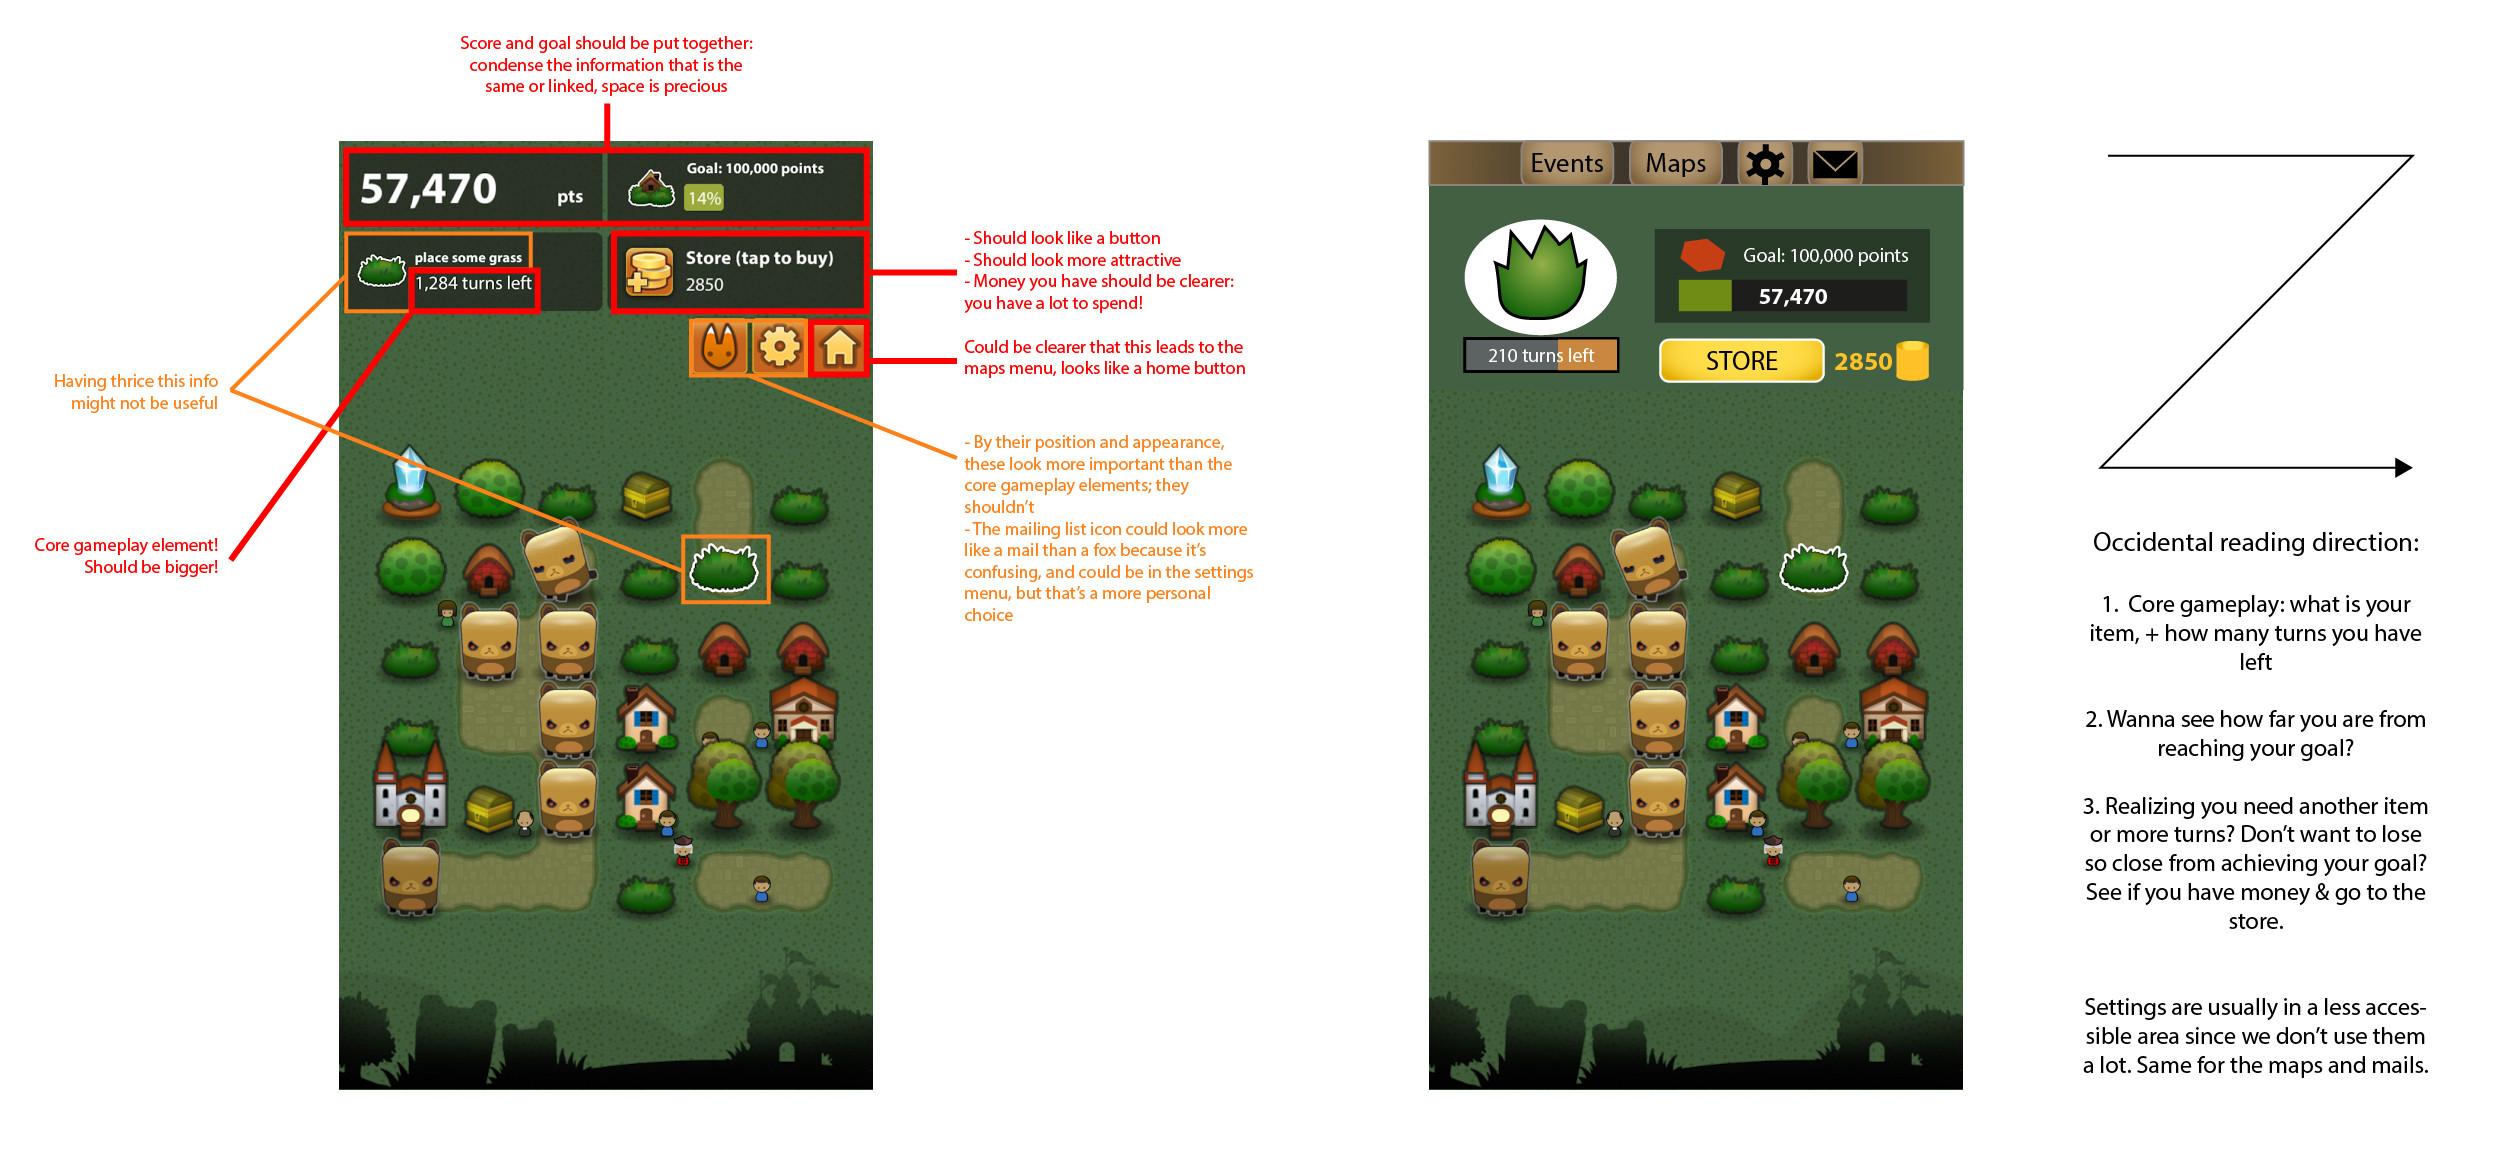 Problems that I have found with the interface of Triple Town mobile, and a simple mock-up to suggest an improved version, easier to read and use.